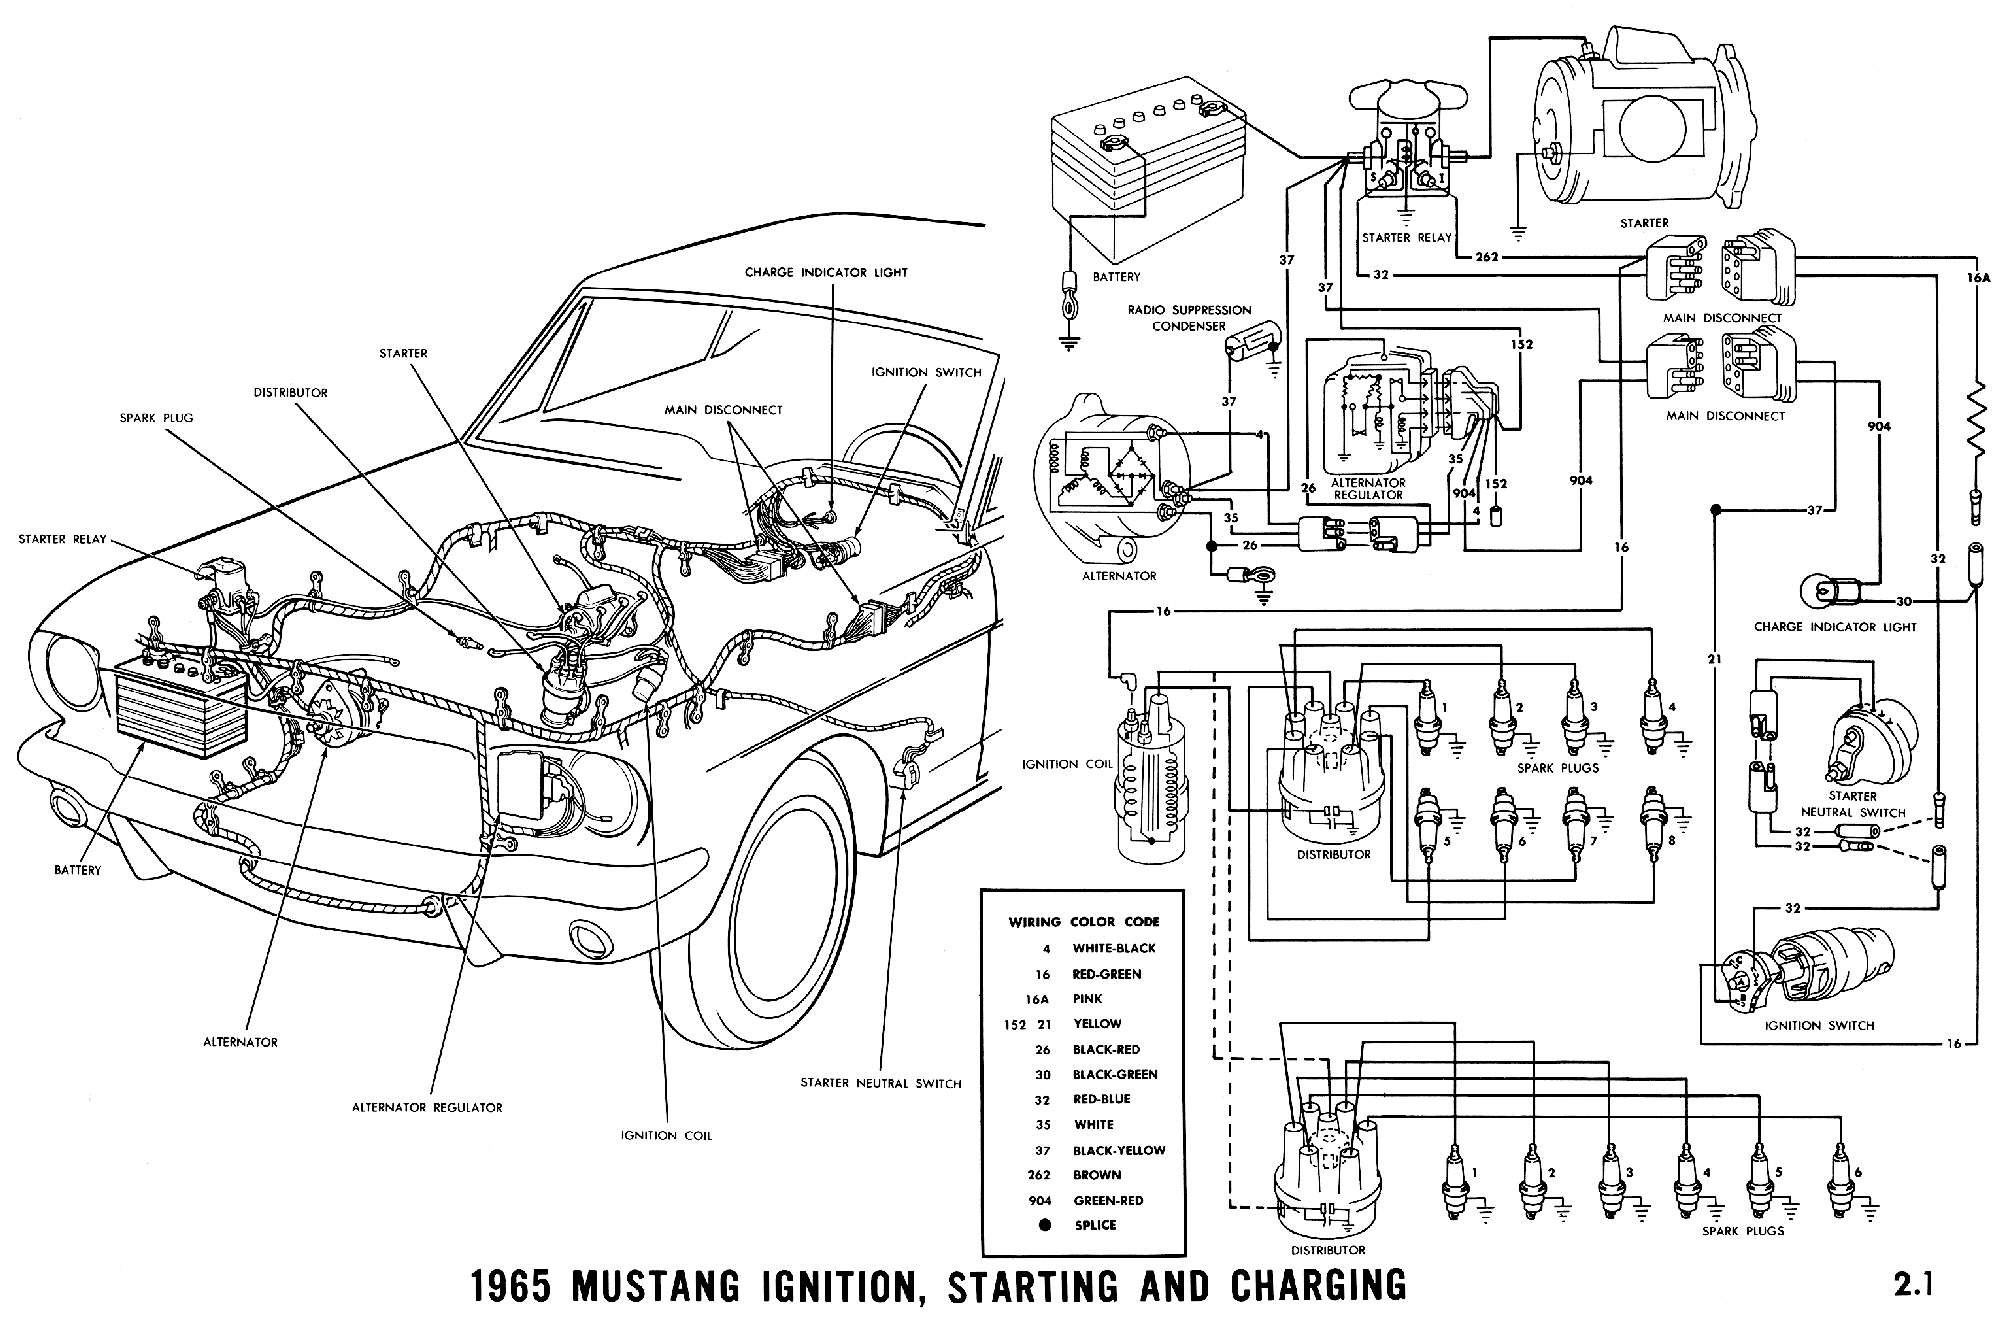 Car Undercarriage Diagram 2015 Mustang Engine Diagram Engine Car Parts and Ponent Diagram Of Car Undercarriage Diagram